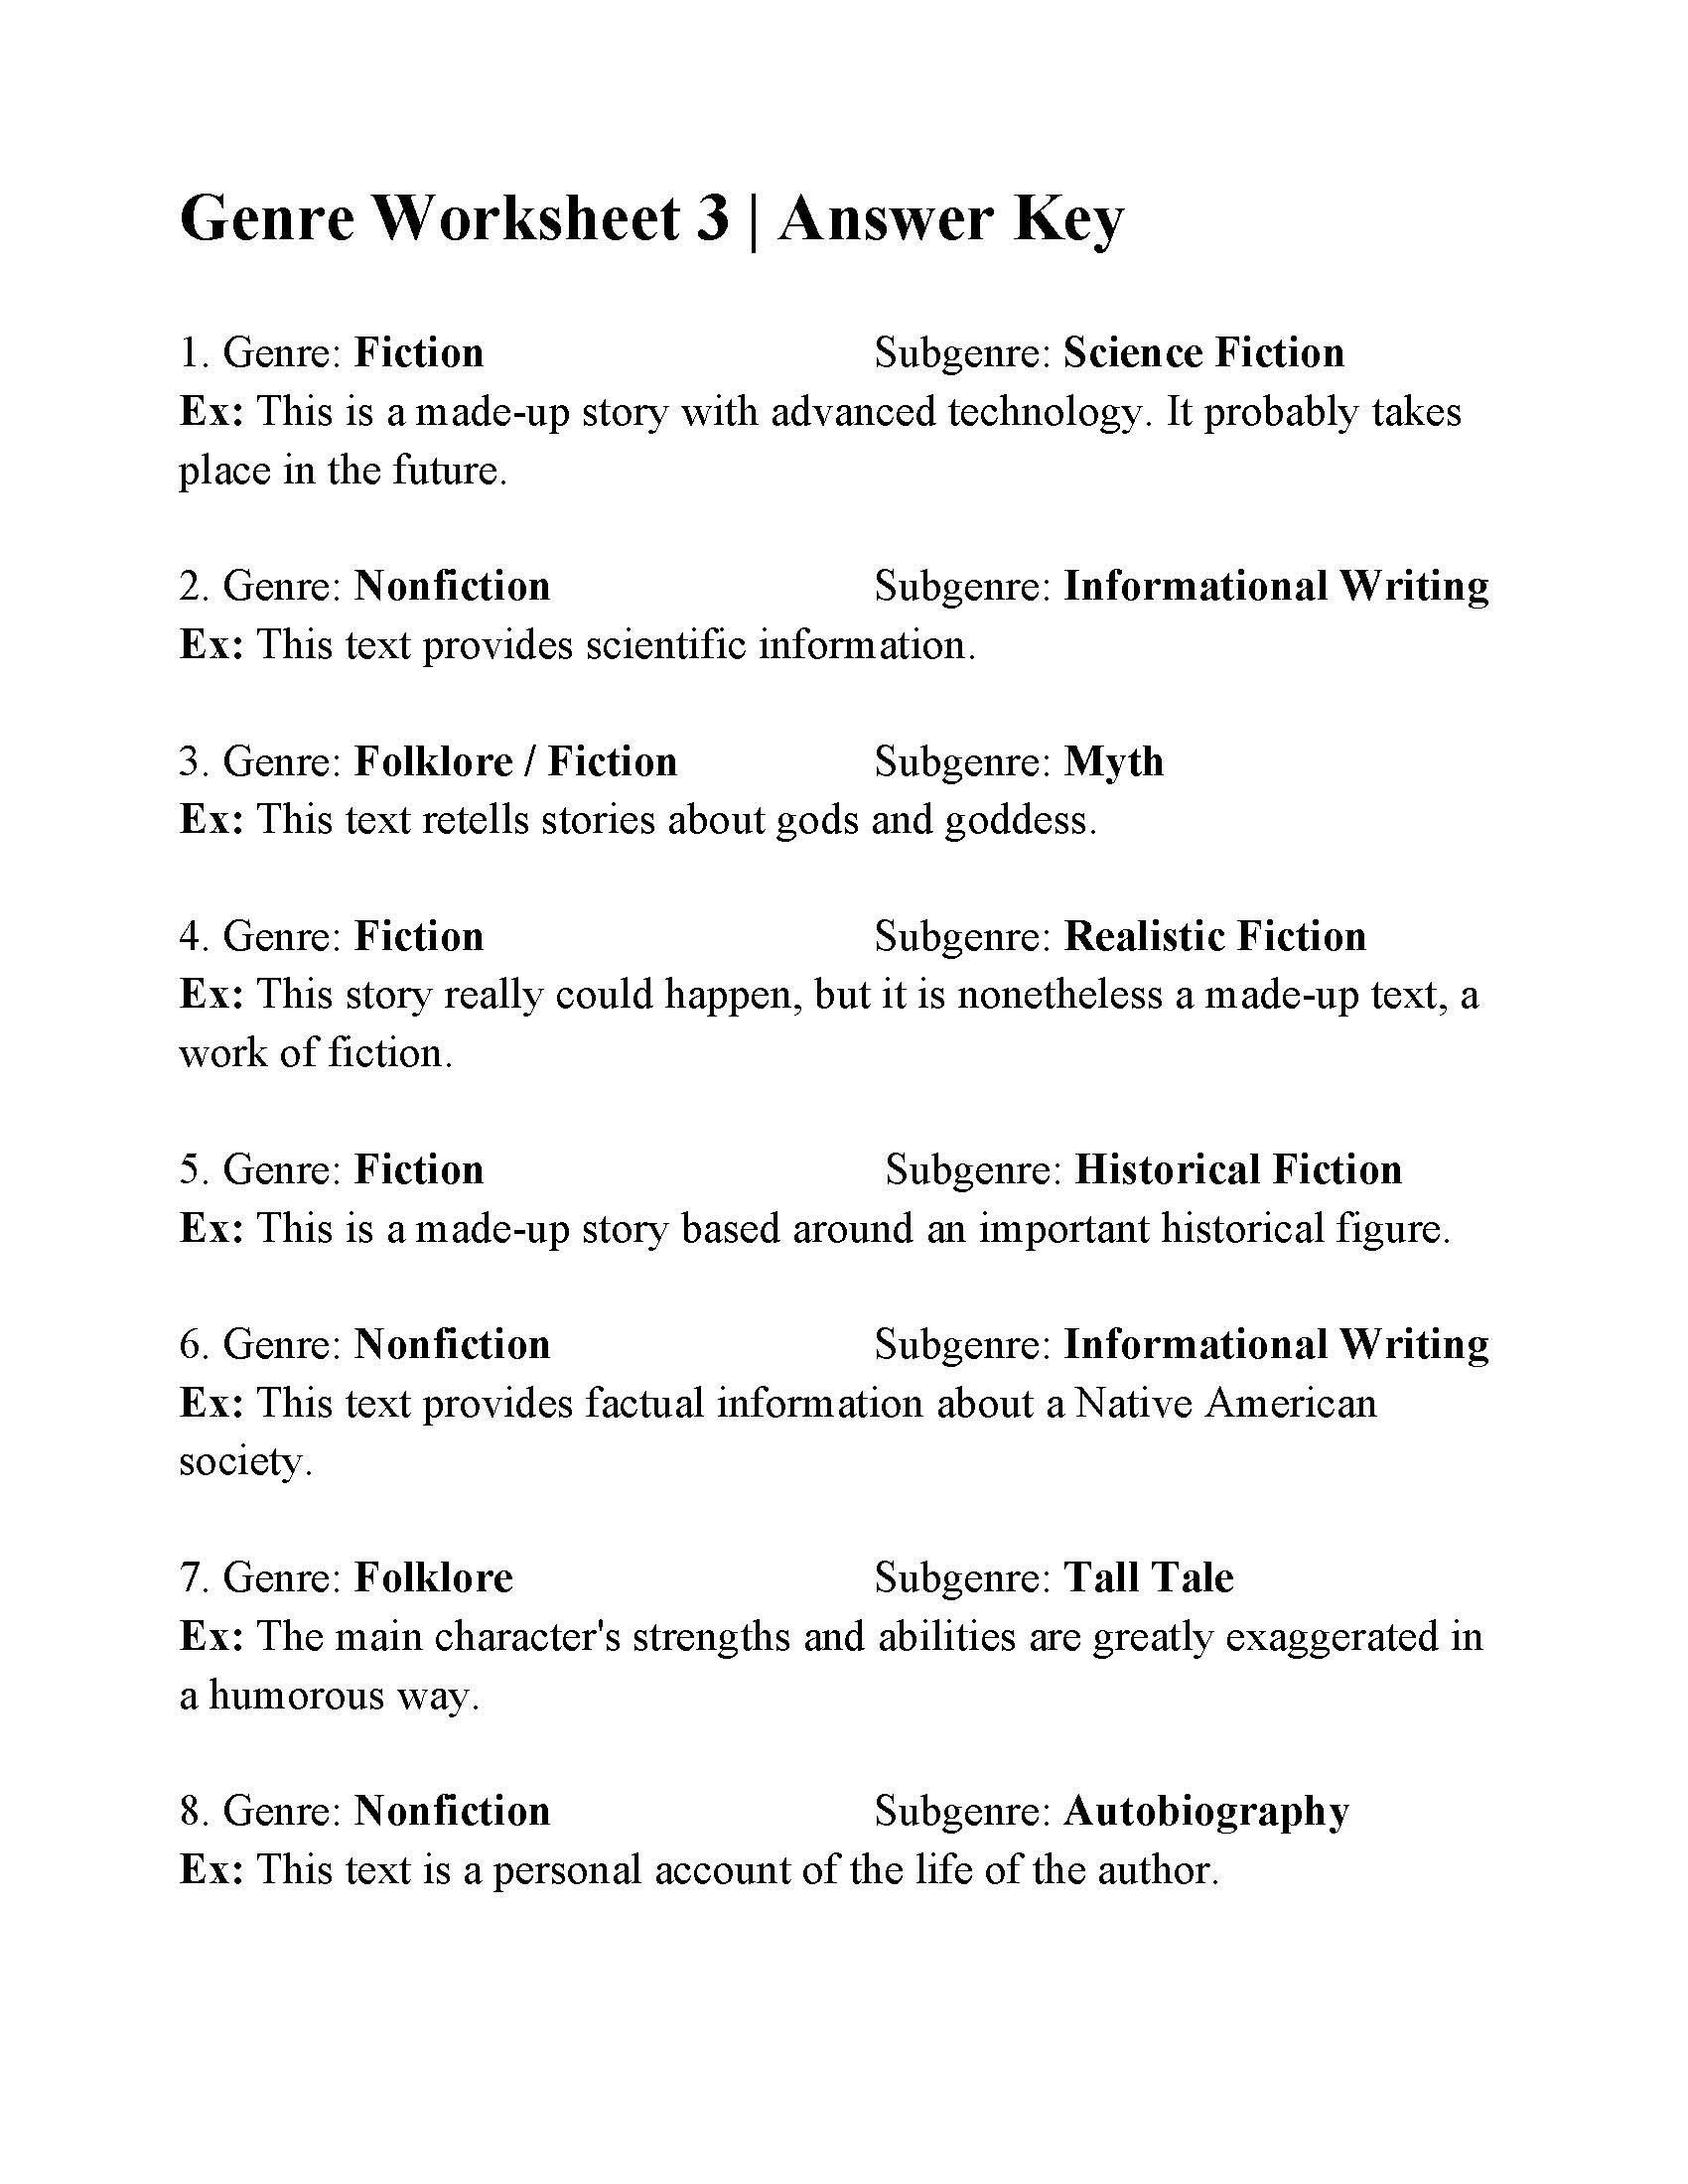 Genre Worksheets 5th Grade Genre And Subgenre Worksheet 6